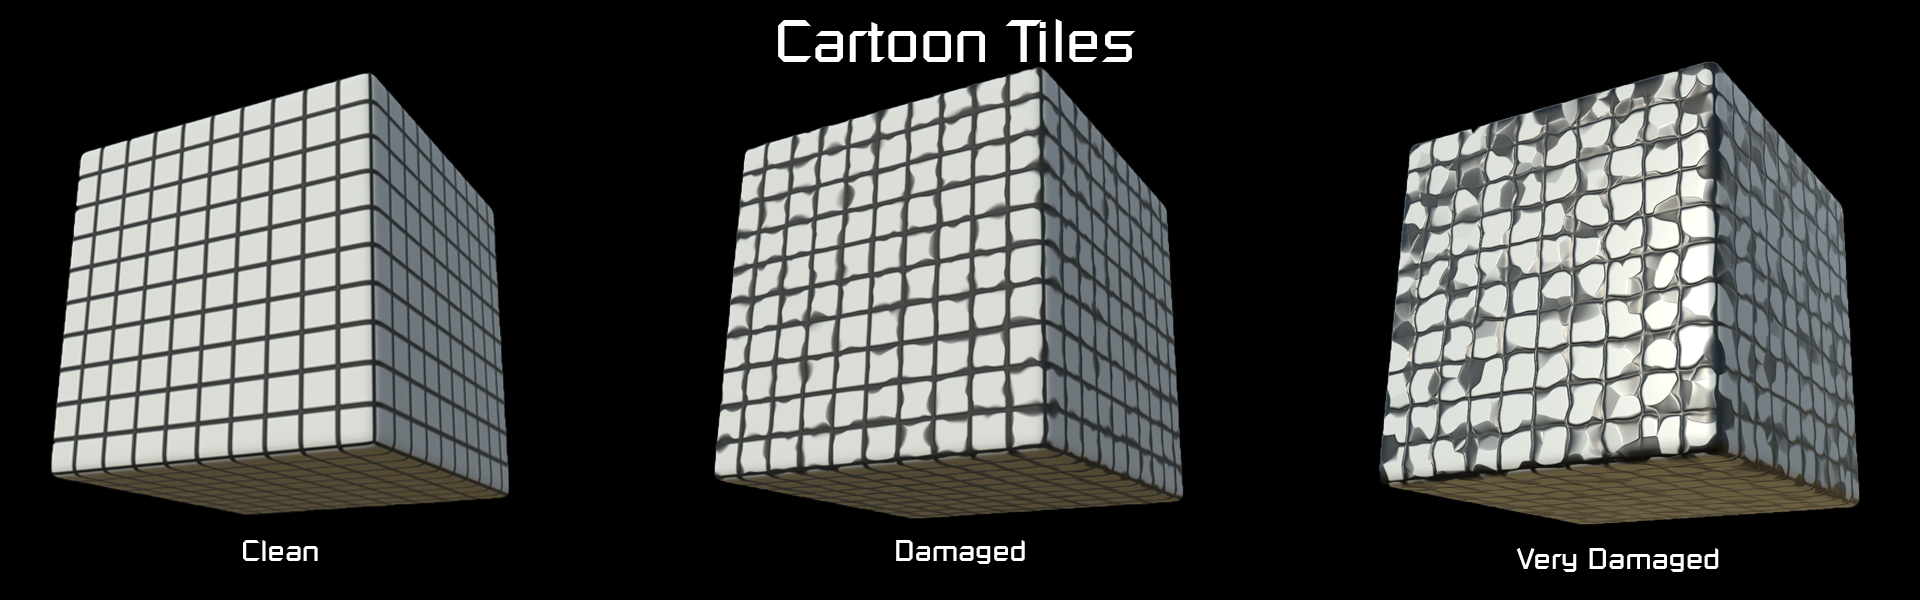 Materials_TileDisplay Cartoon Tiles